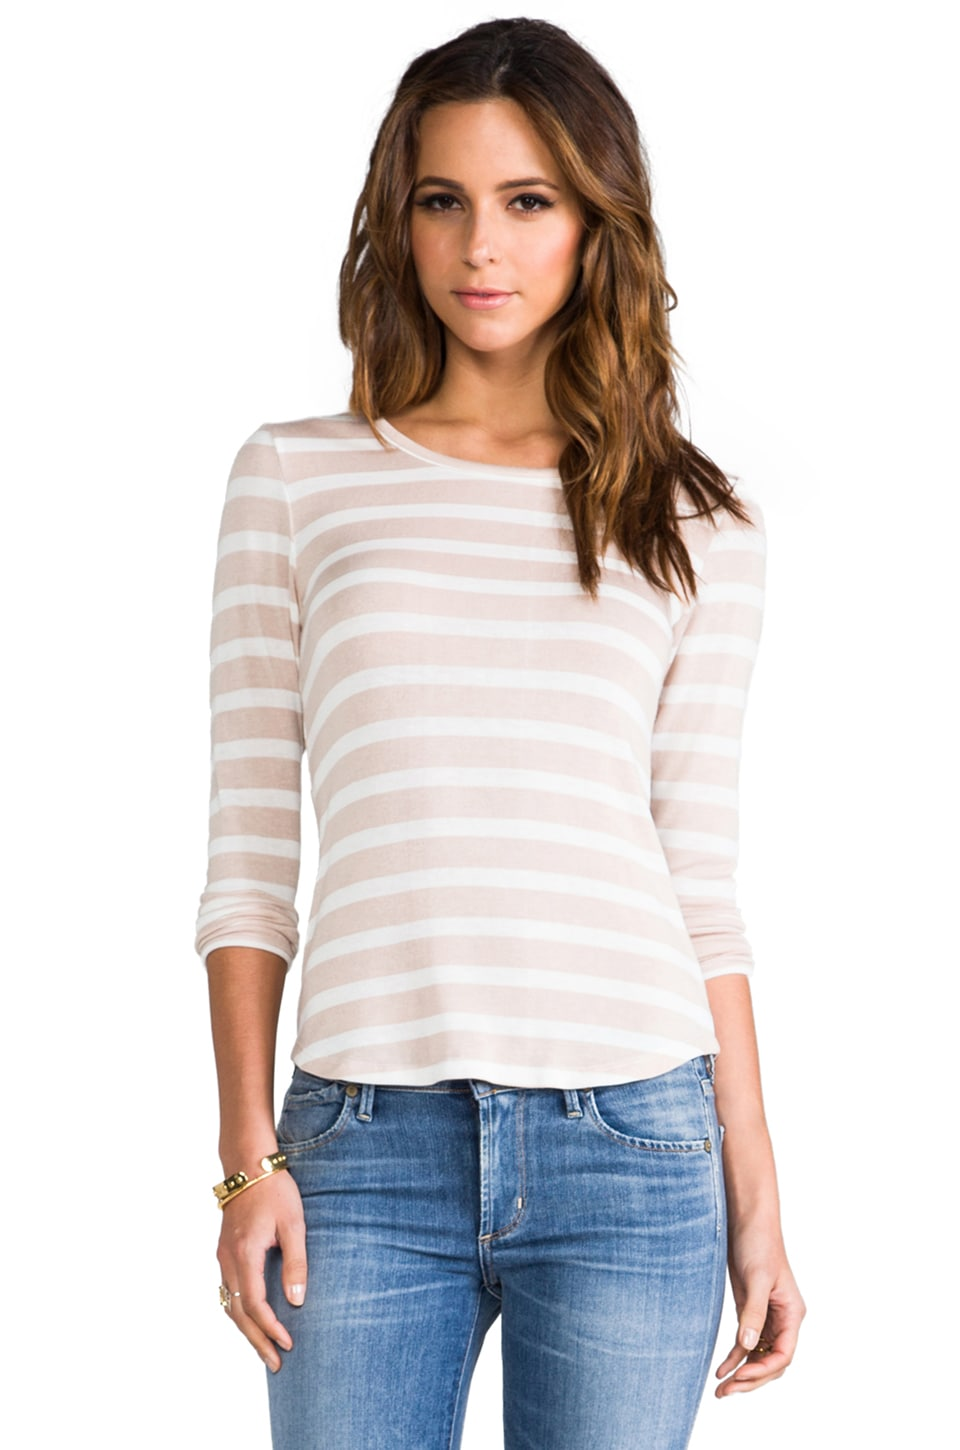 Dakota Collective Sadi Stripe Shirt Tail Long Sleeve Tee in Ecru & Natural